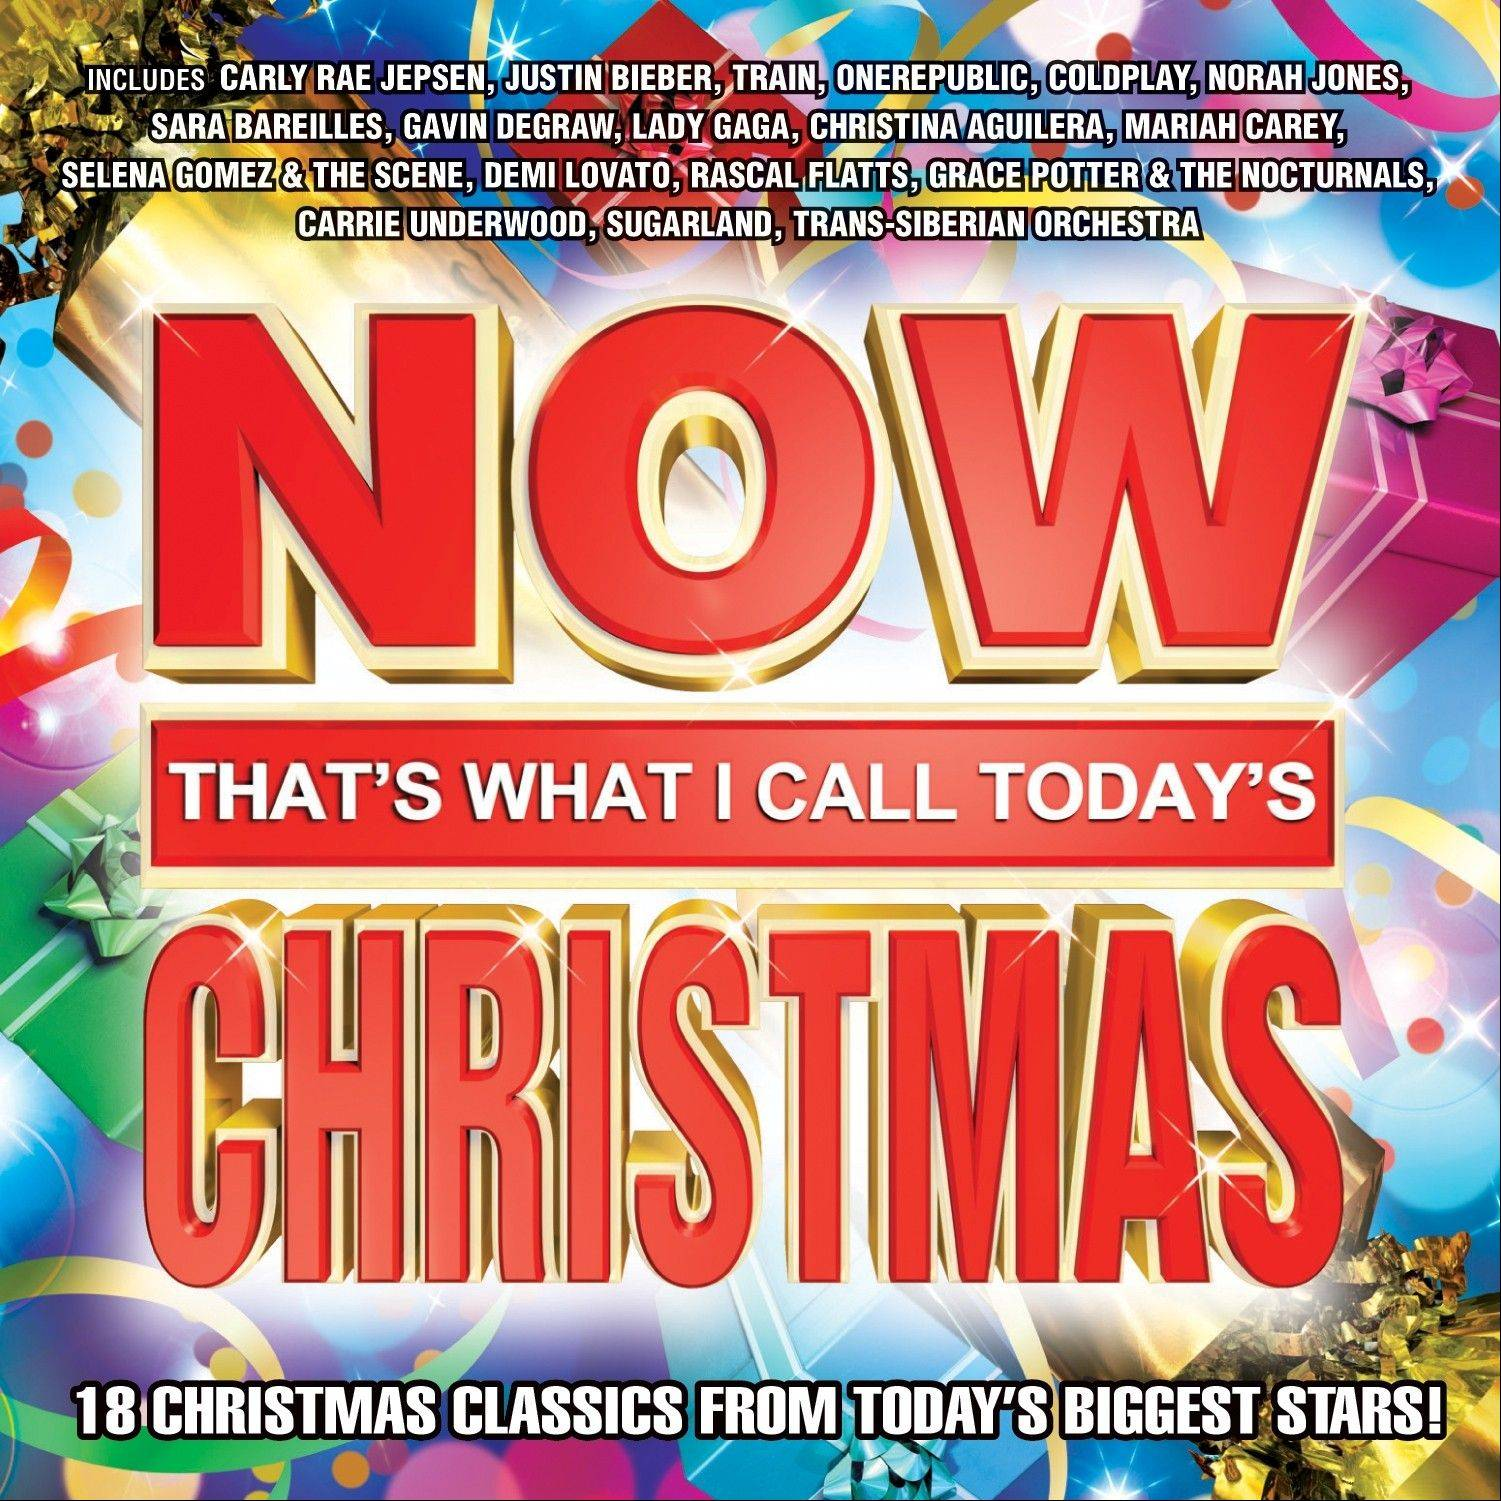 """Now That's What I Call Today's Christmas,"" by various artists including Carly Rae Jepsen, Justin Bieber and Train"